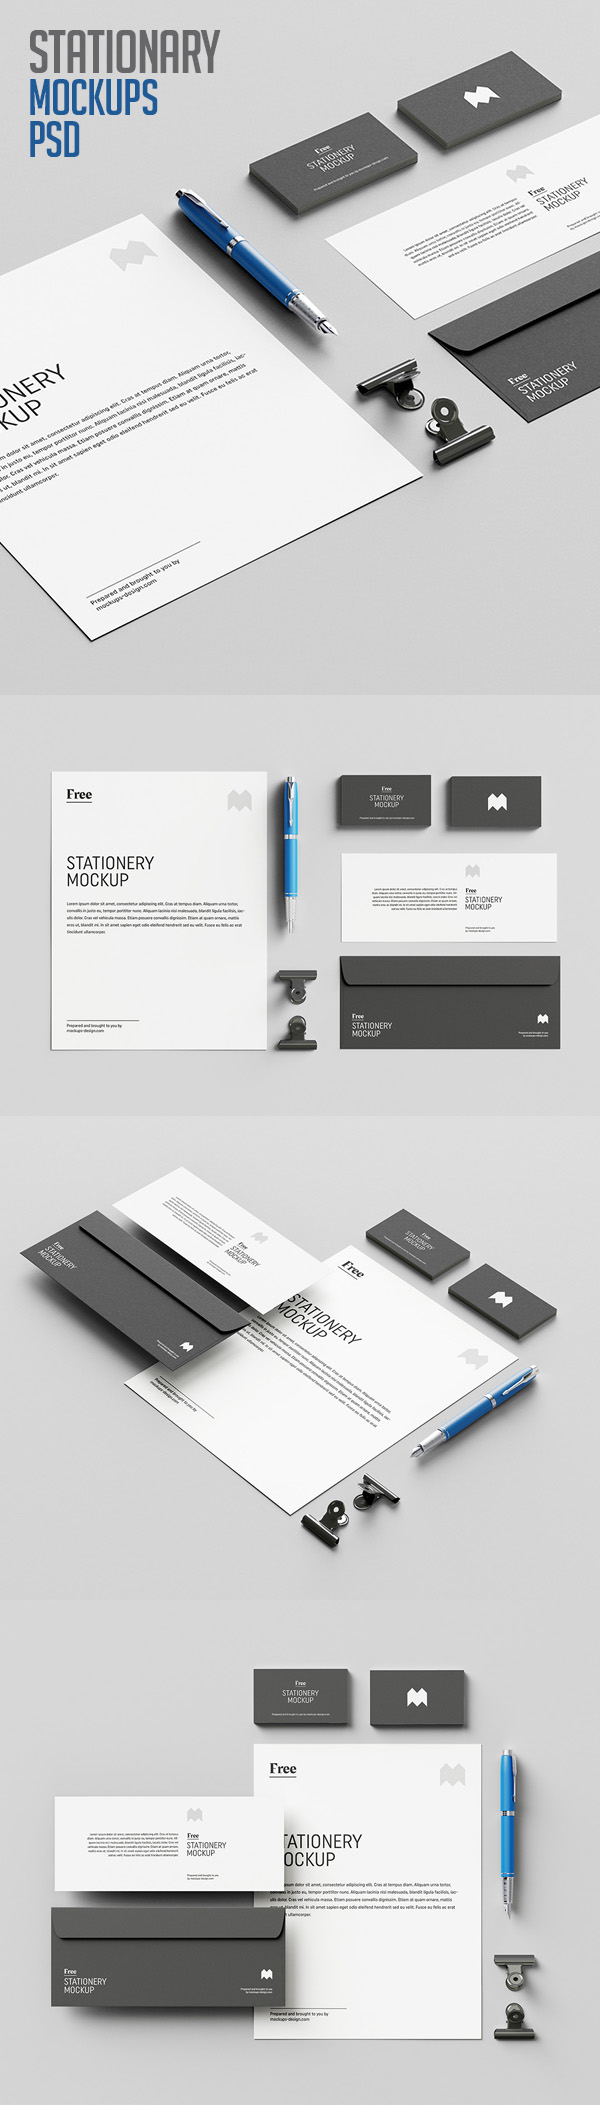 Free stationary models PSD